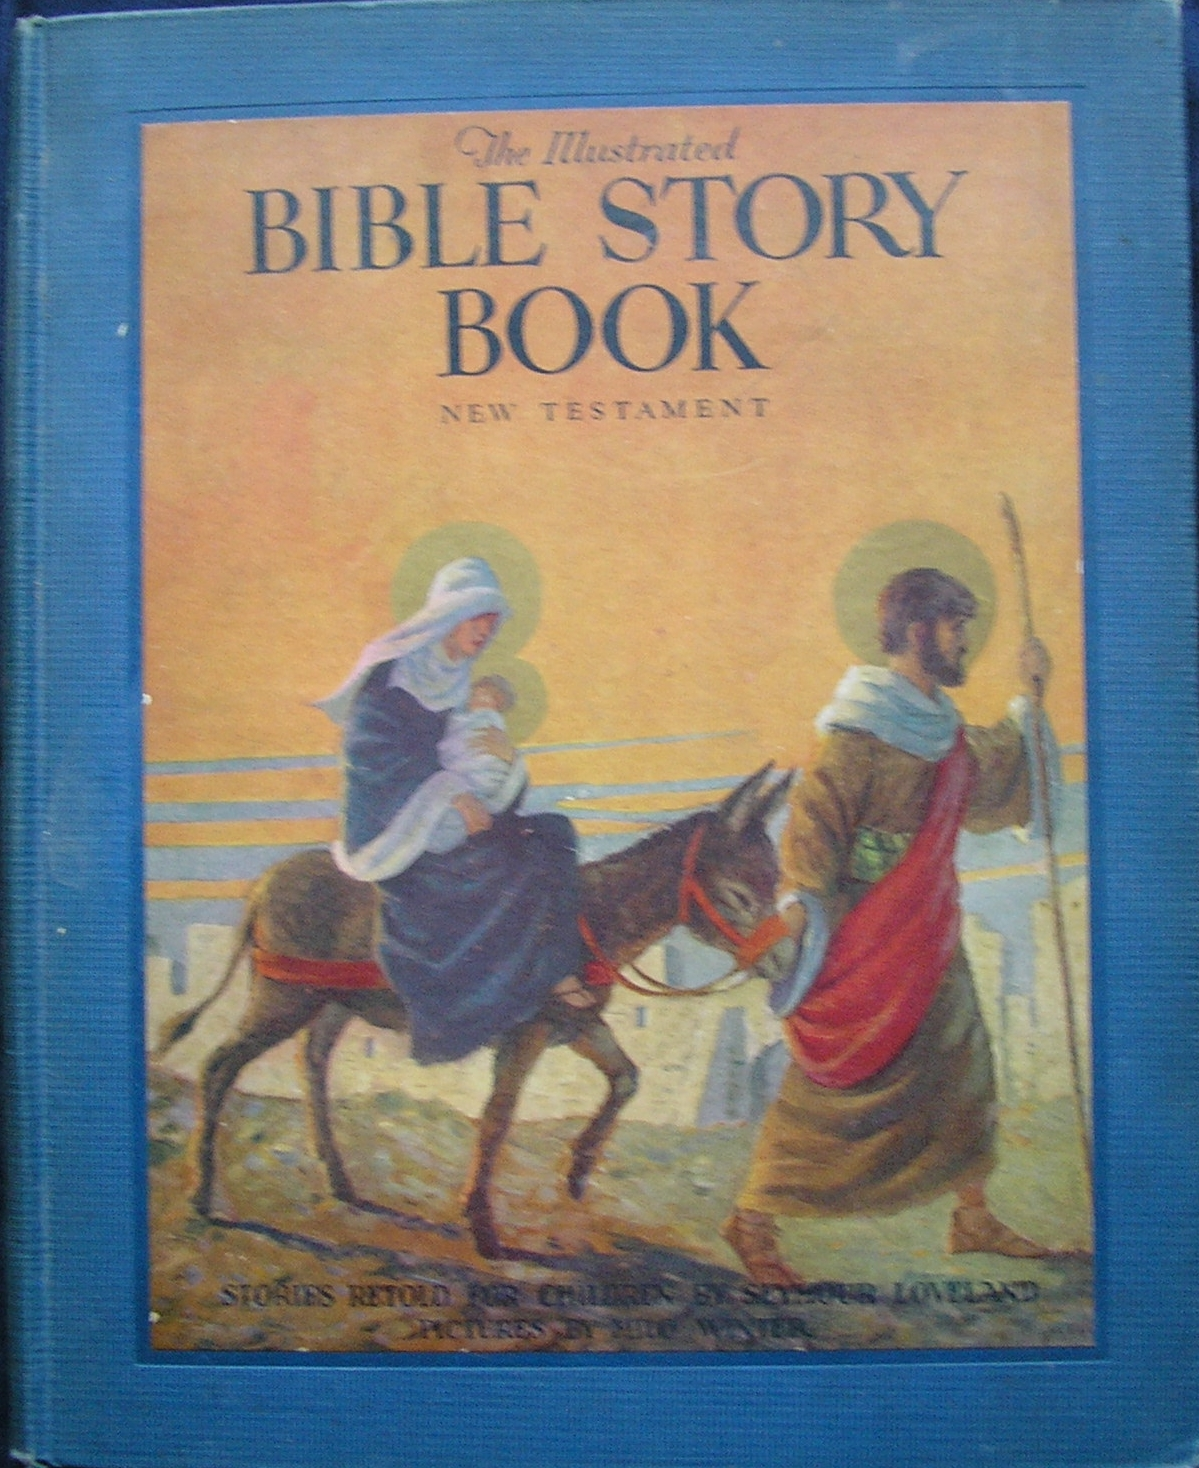 The Illustrated Bible Story Book: New Testament